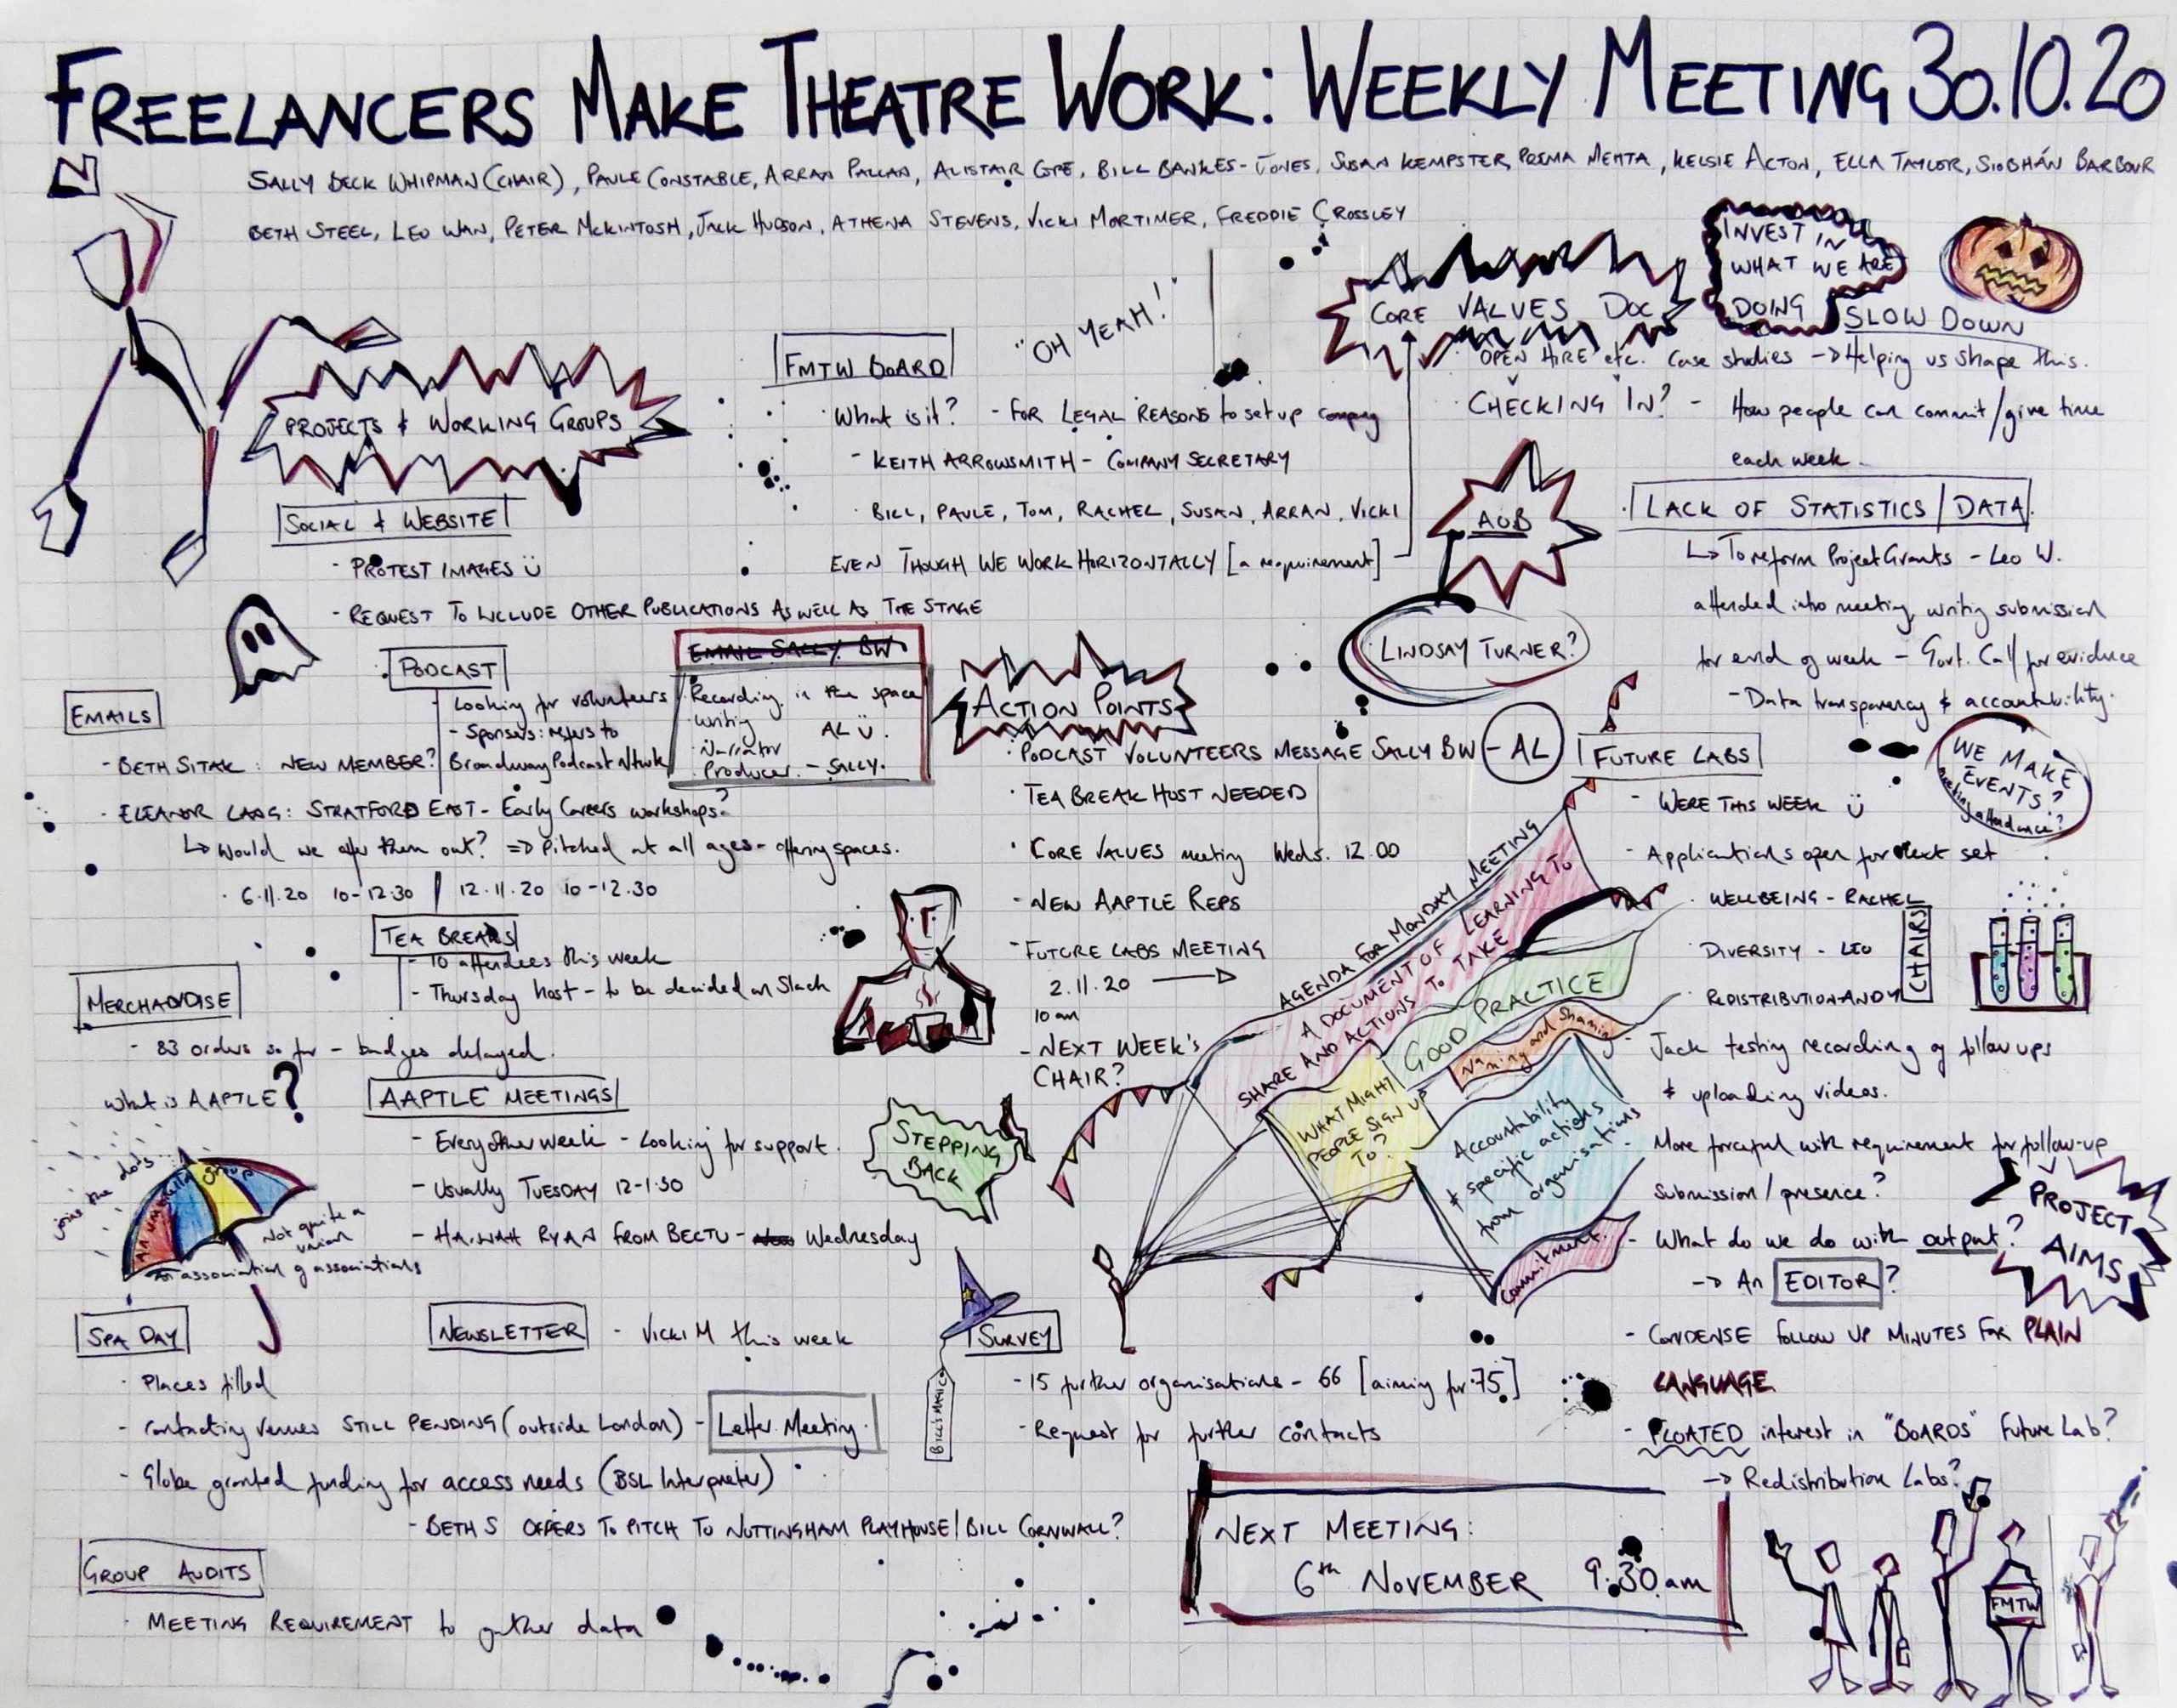 Graphic notes of FMTW Minutes